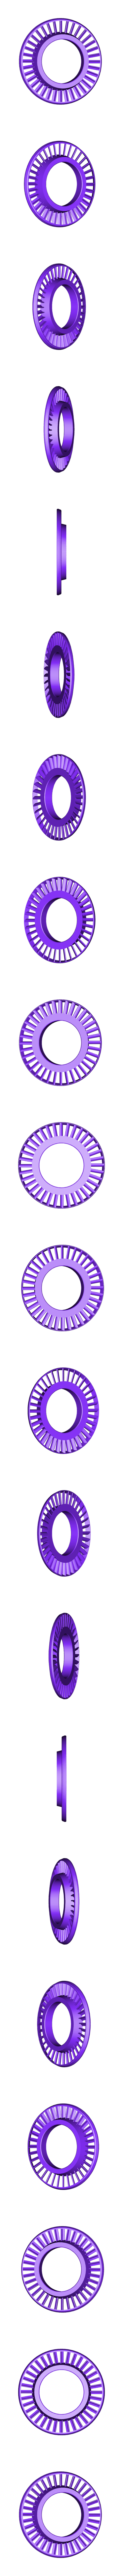 PT-03-Rotor101.stl Download STL file Propfan Engine, Pusher Type using with Planetary Gearbox • 3D printer template, konchan77